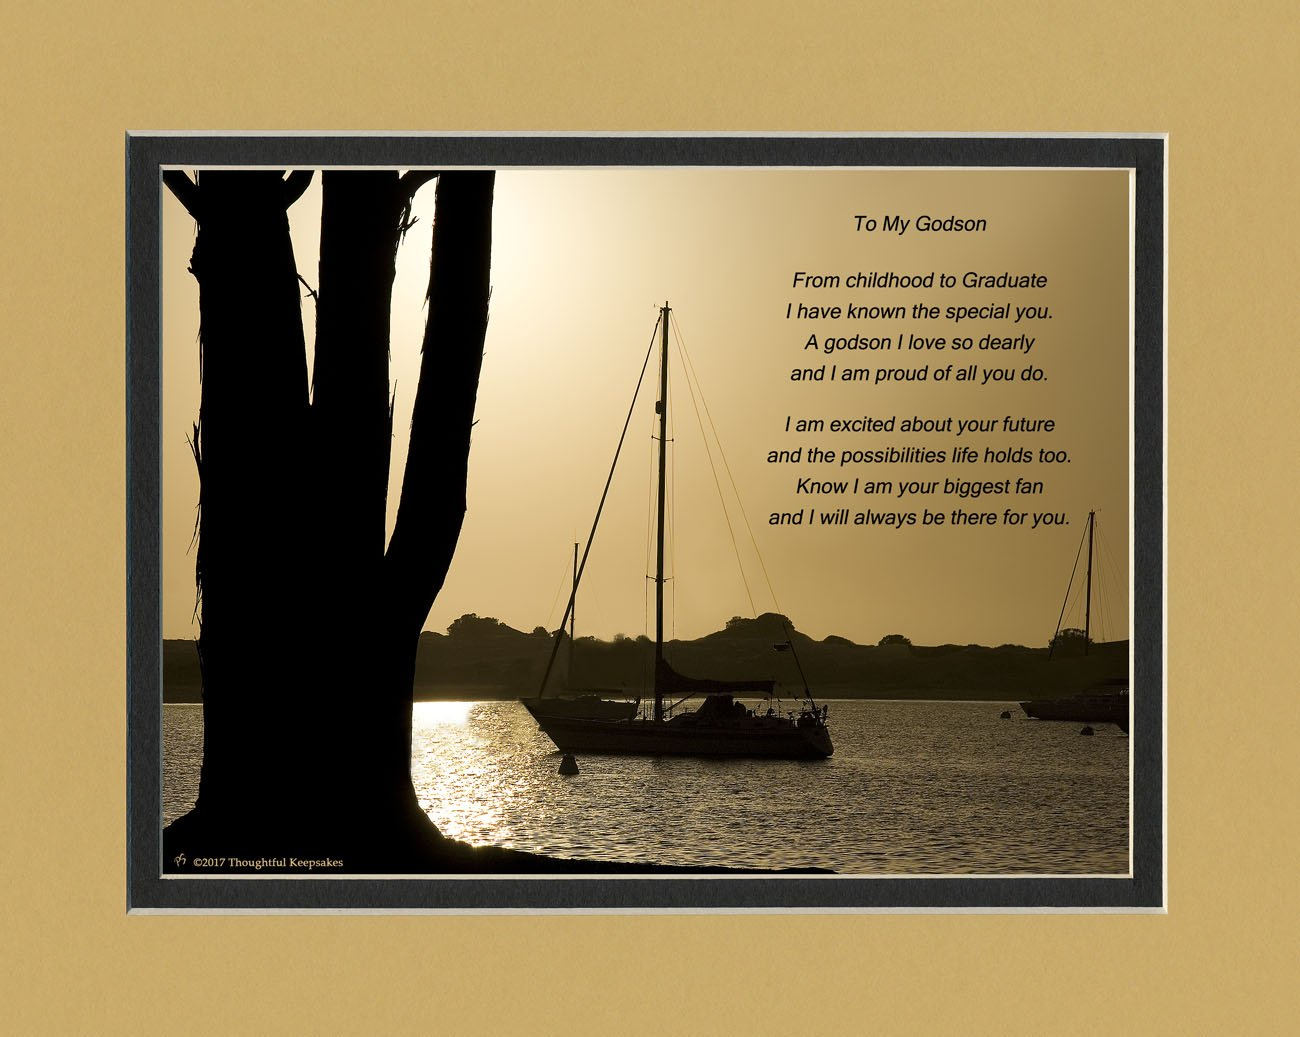 Graduation Gifts Godson, Boats at Dusk Photo with From Childhood to Graduate Poem, 8x10 Double Matted. Special Keepsake for Godson, Unique College and High School Grad Gifts.